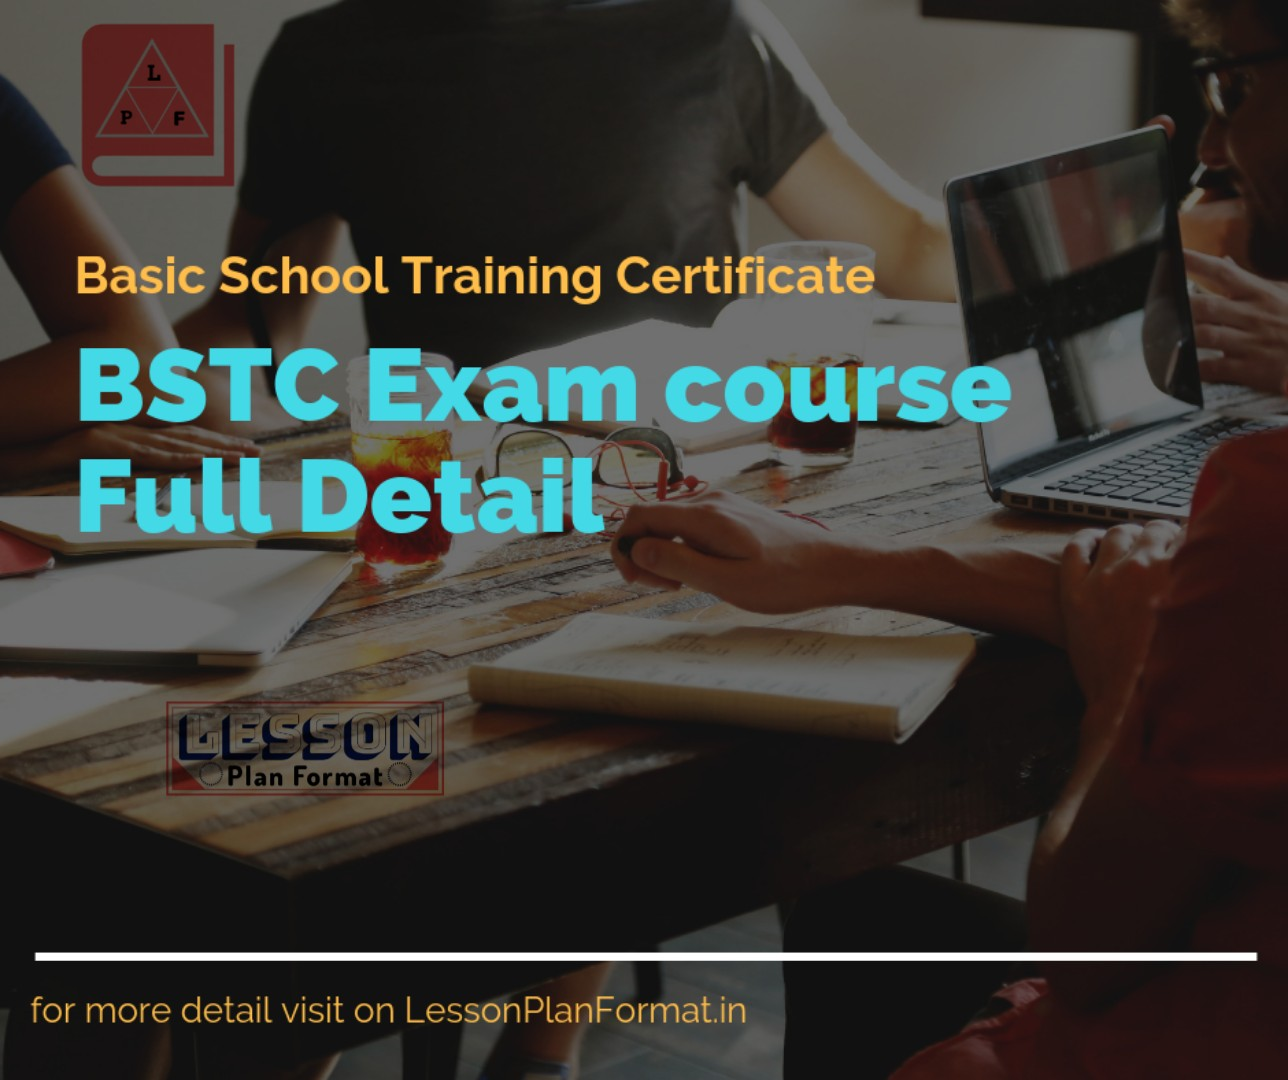 Bstc exam course full detail